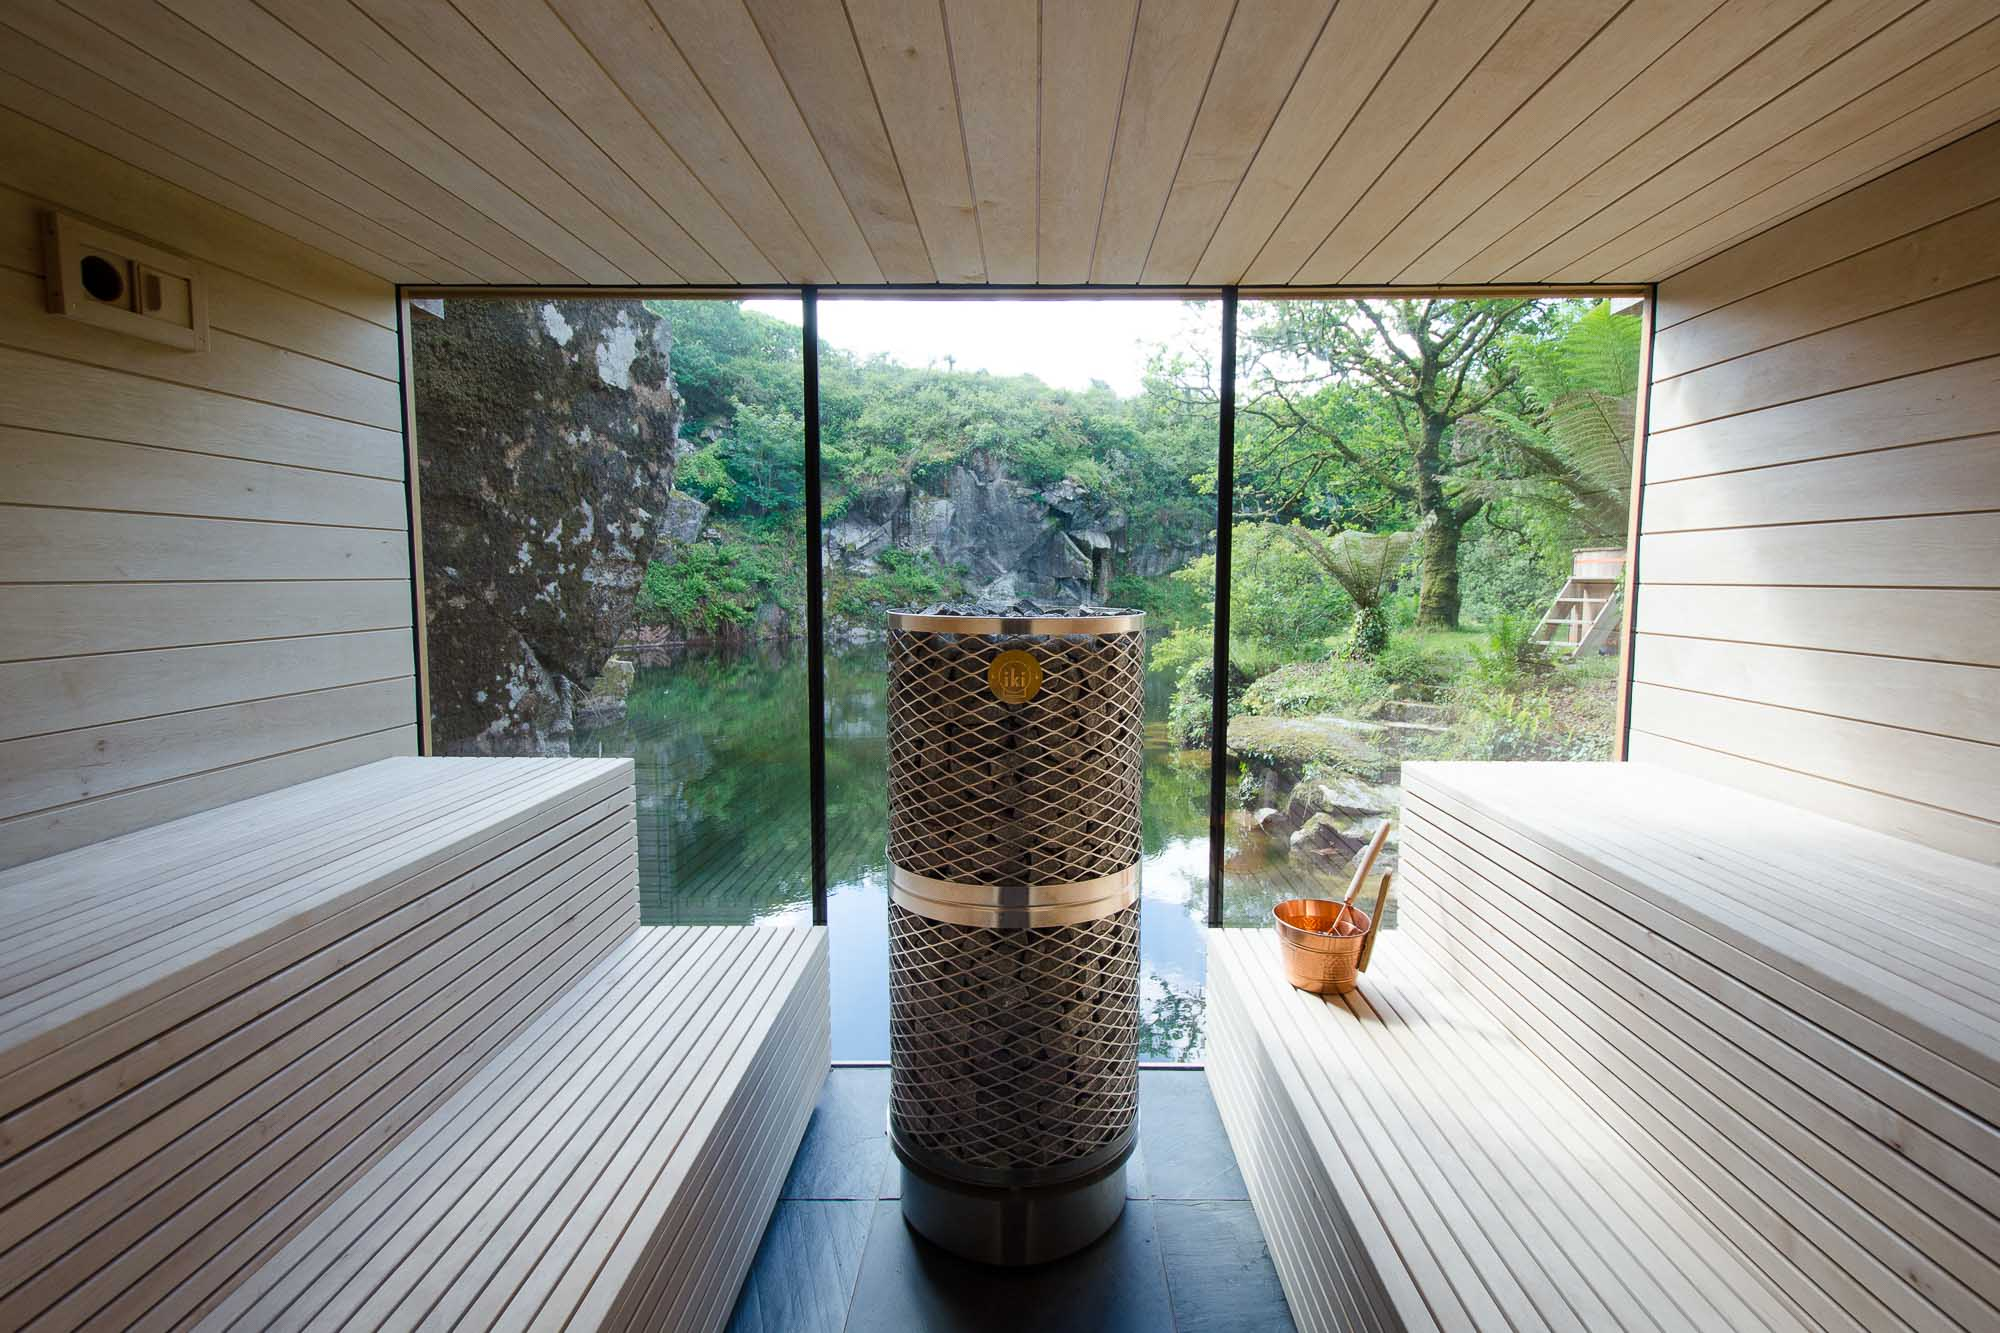 internal wooden sauna with iki sauna heater and copper bucket and ladle over looking granite quarry and water